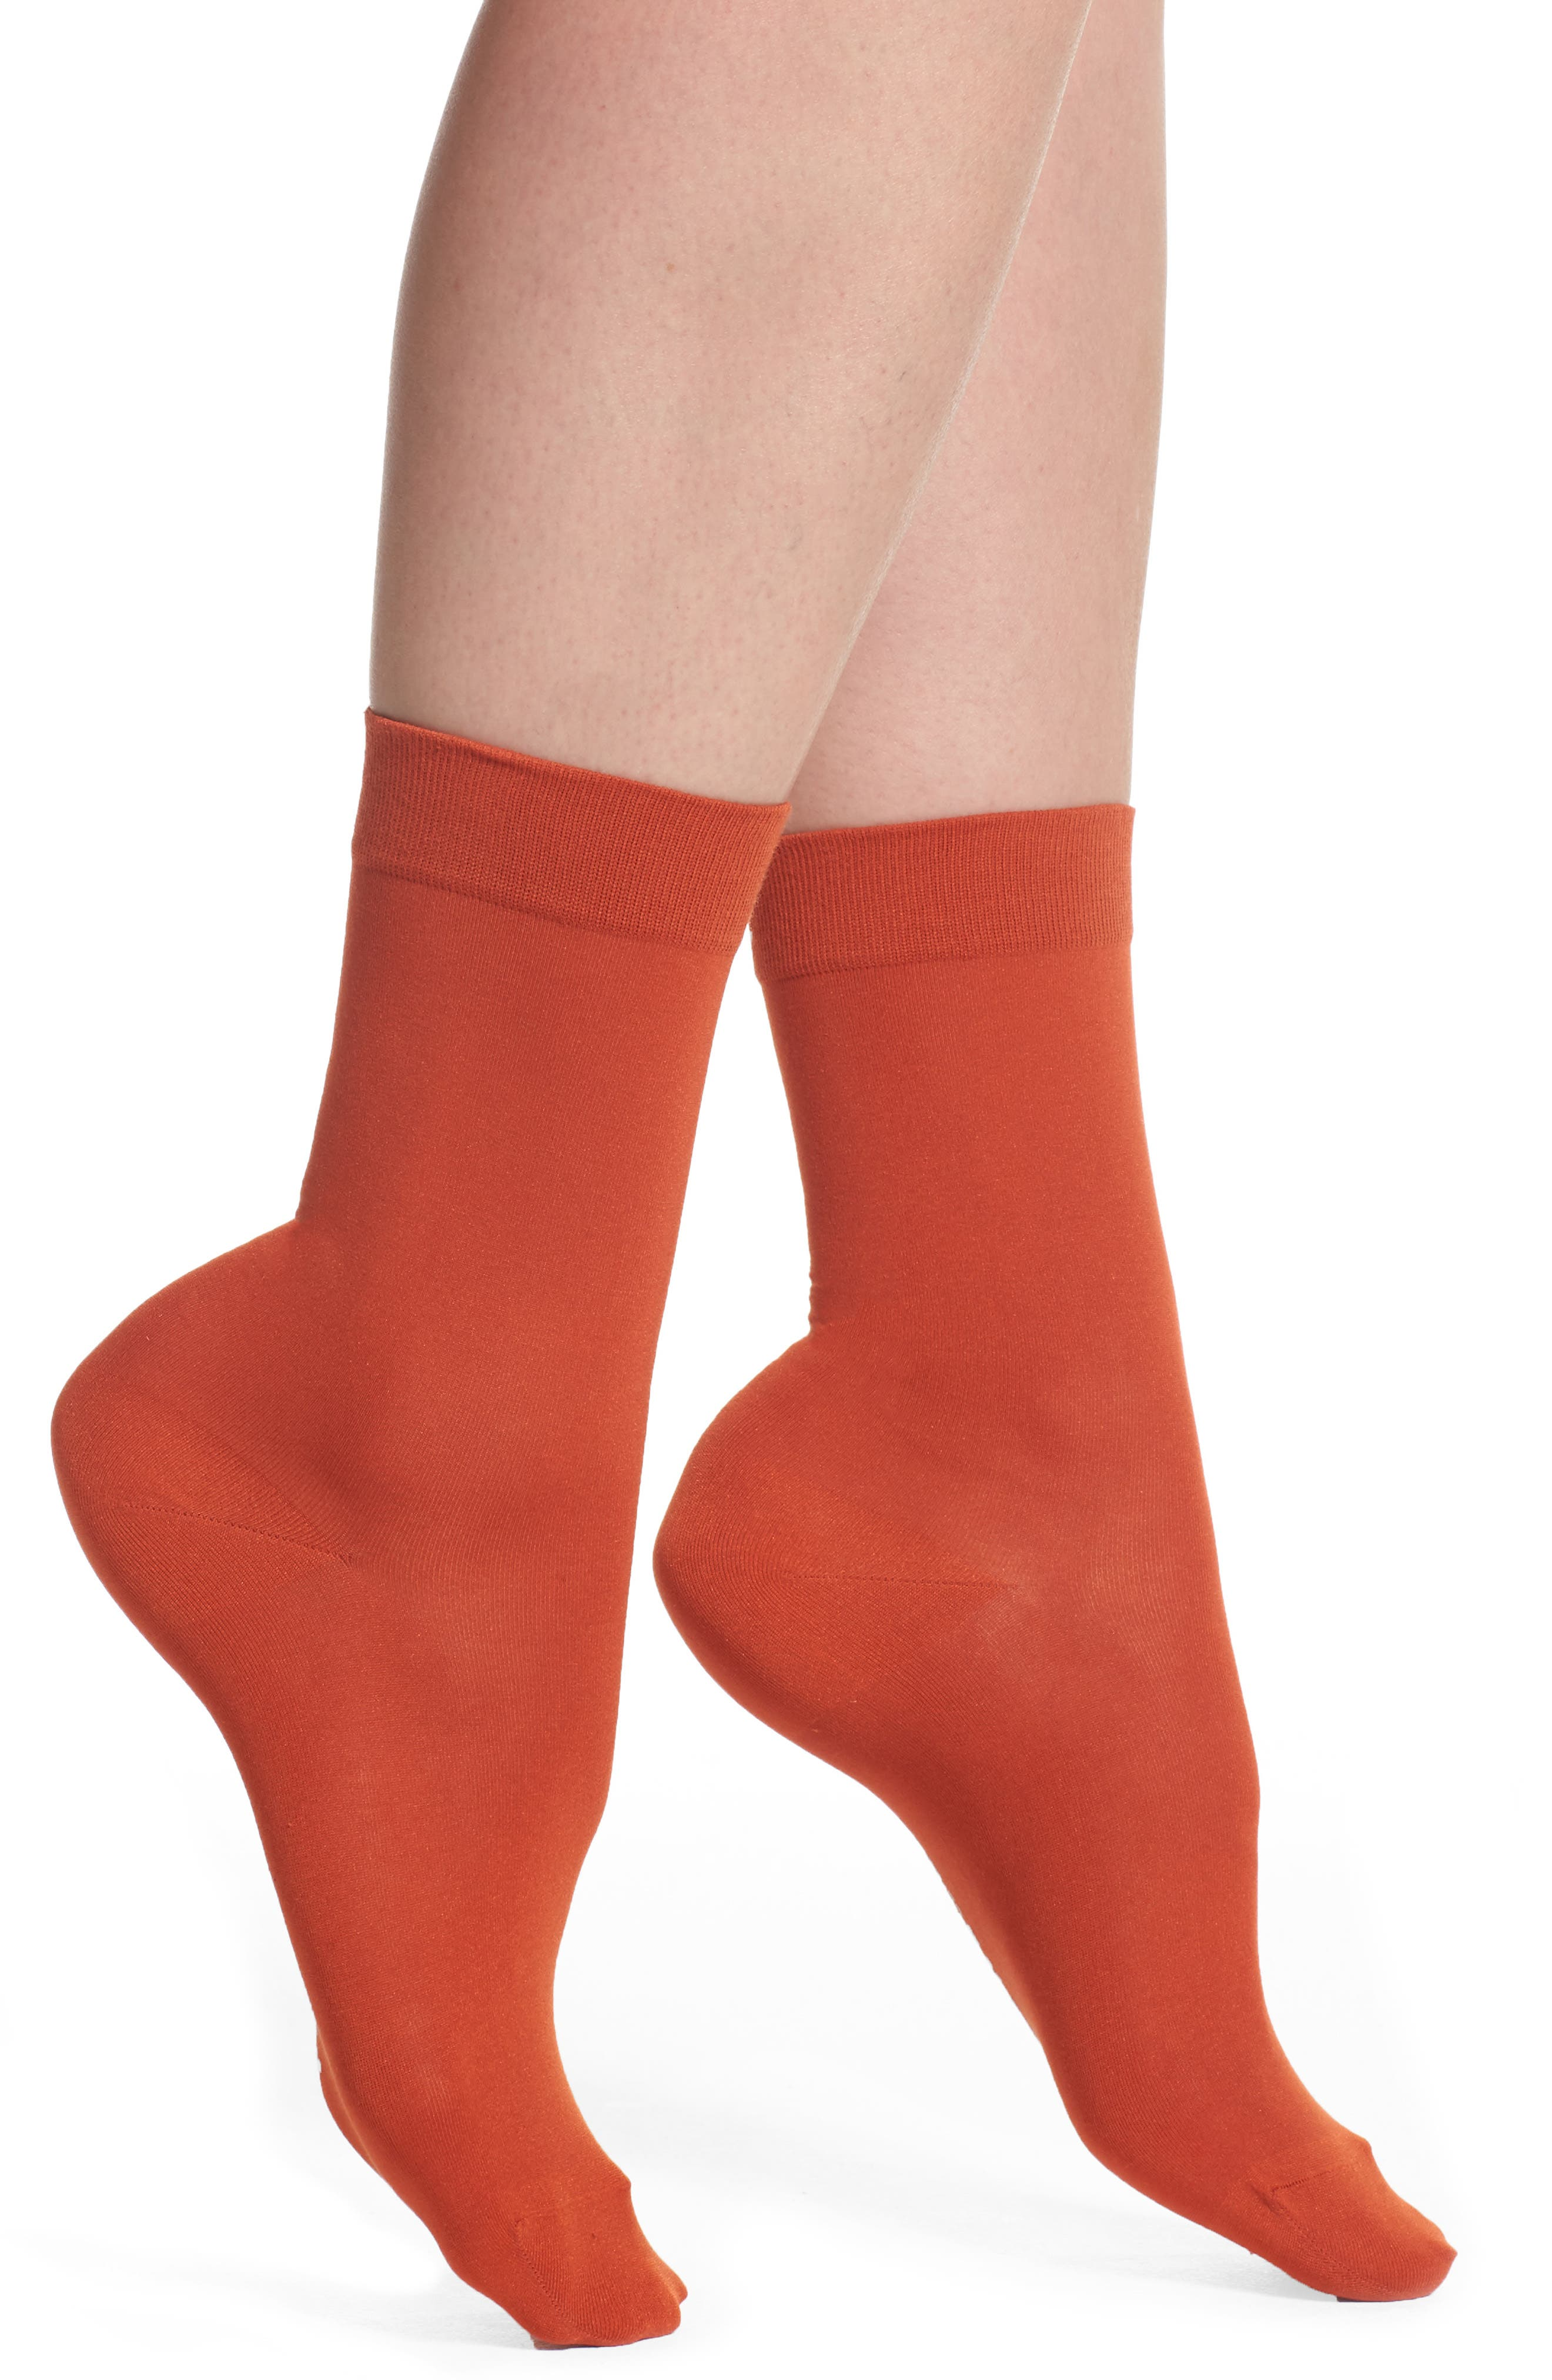 Alternate Image 1 Selected - Falke Cotton Blend Trouser Socks